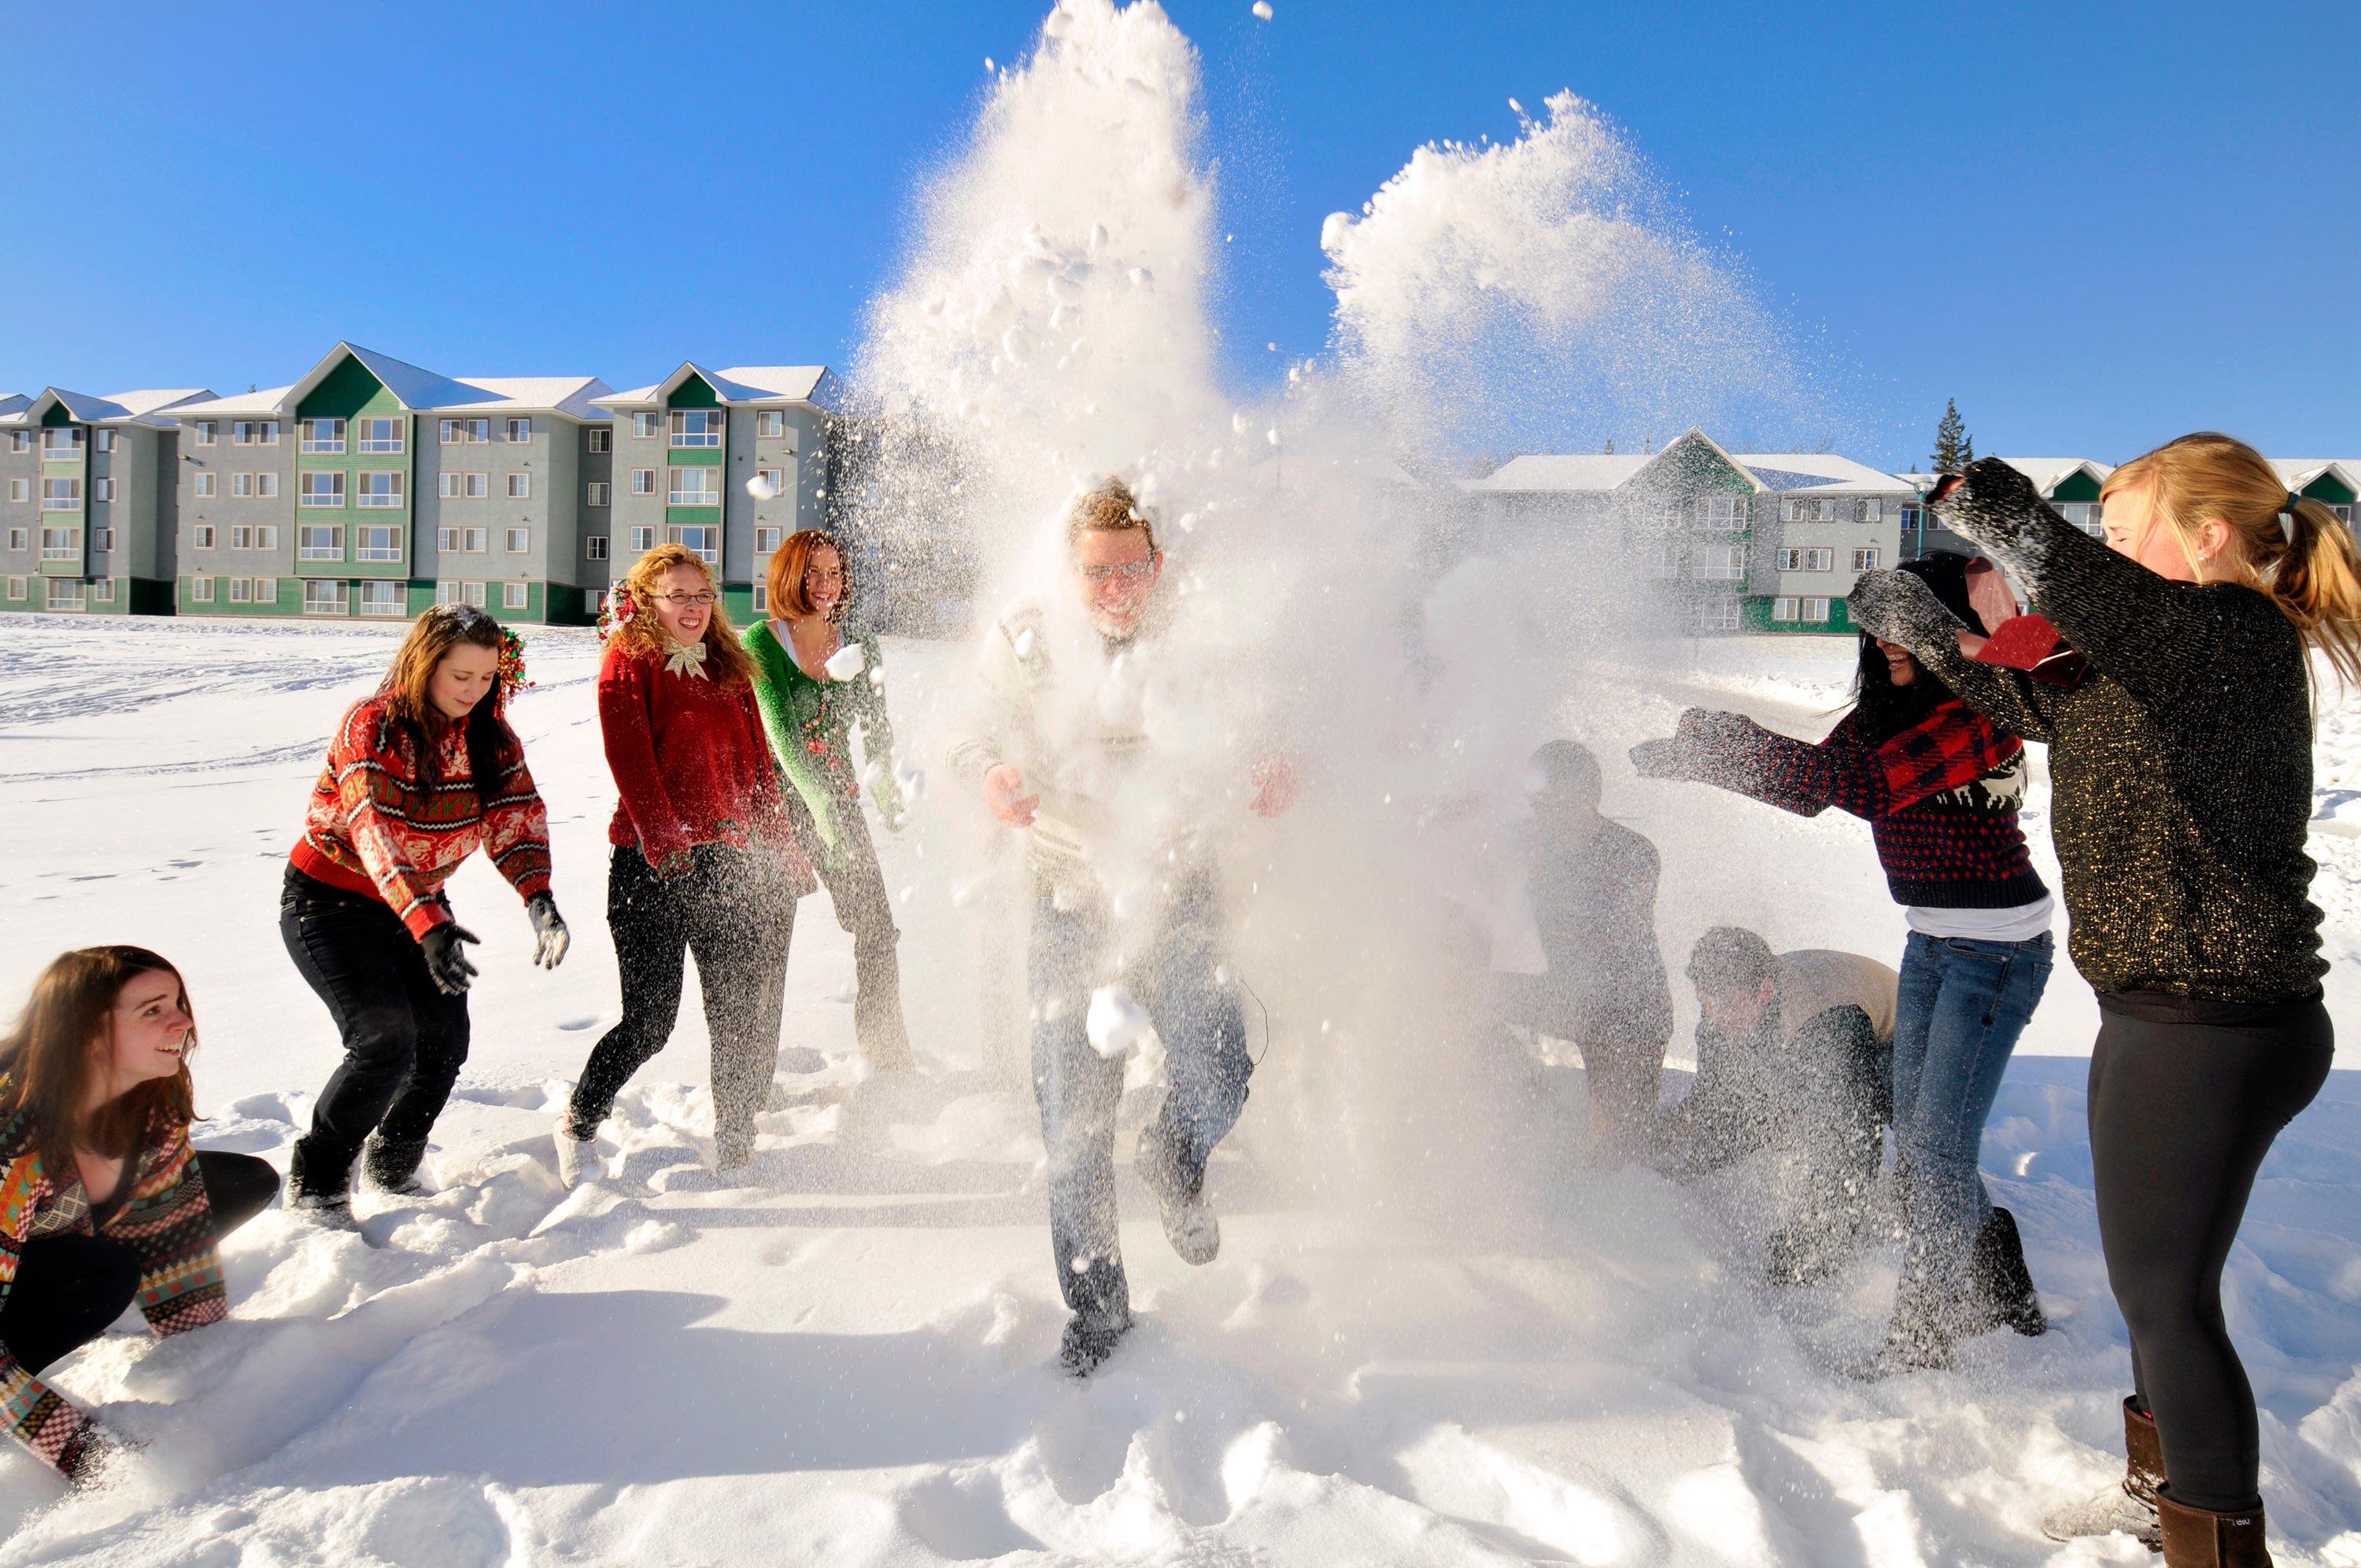 UNBC students throwing snow at each other on campus in Prince George, BC.